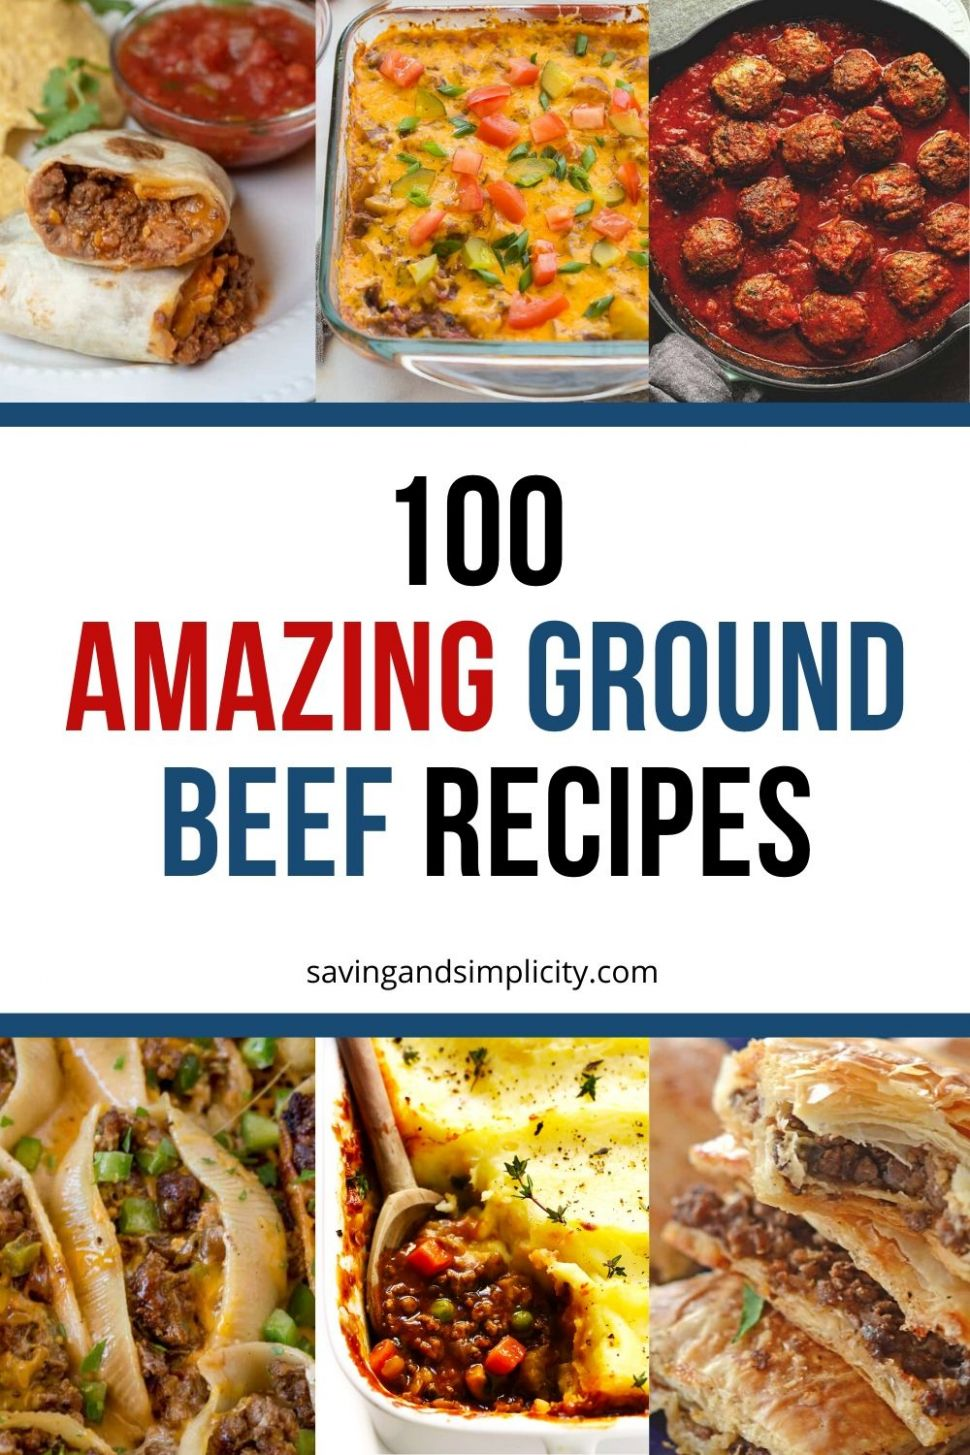 Best Ground Beef Recipes - Saving & Simplicity